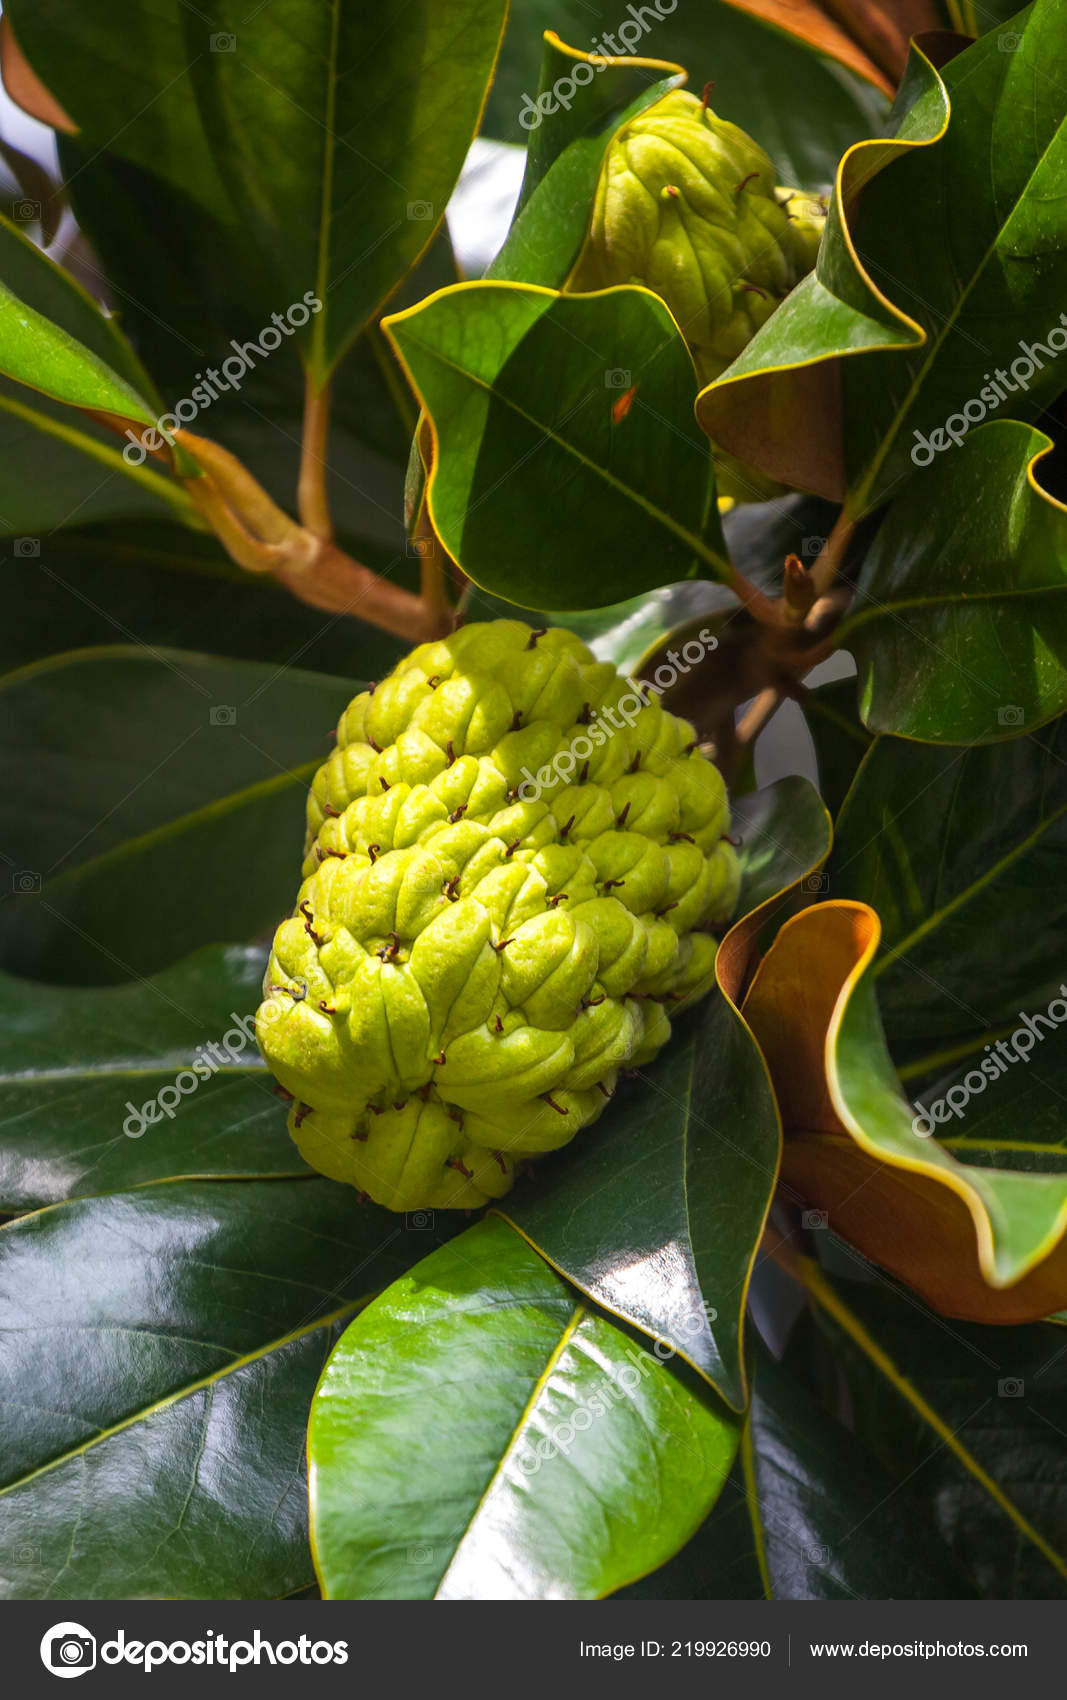 Magnolia Tree Exhibits Seed Pods Flora Stock Photo Samurkas